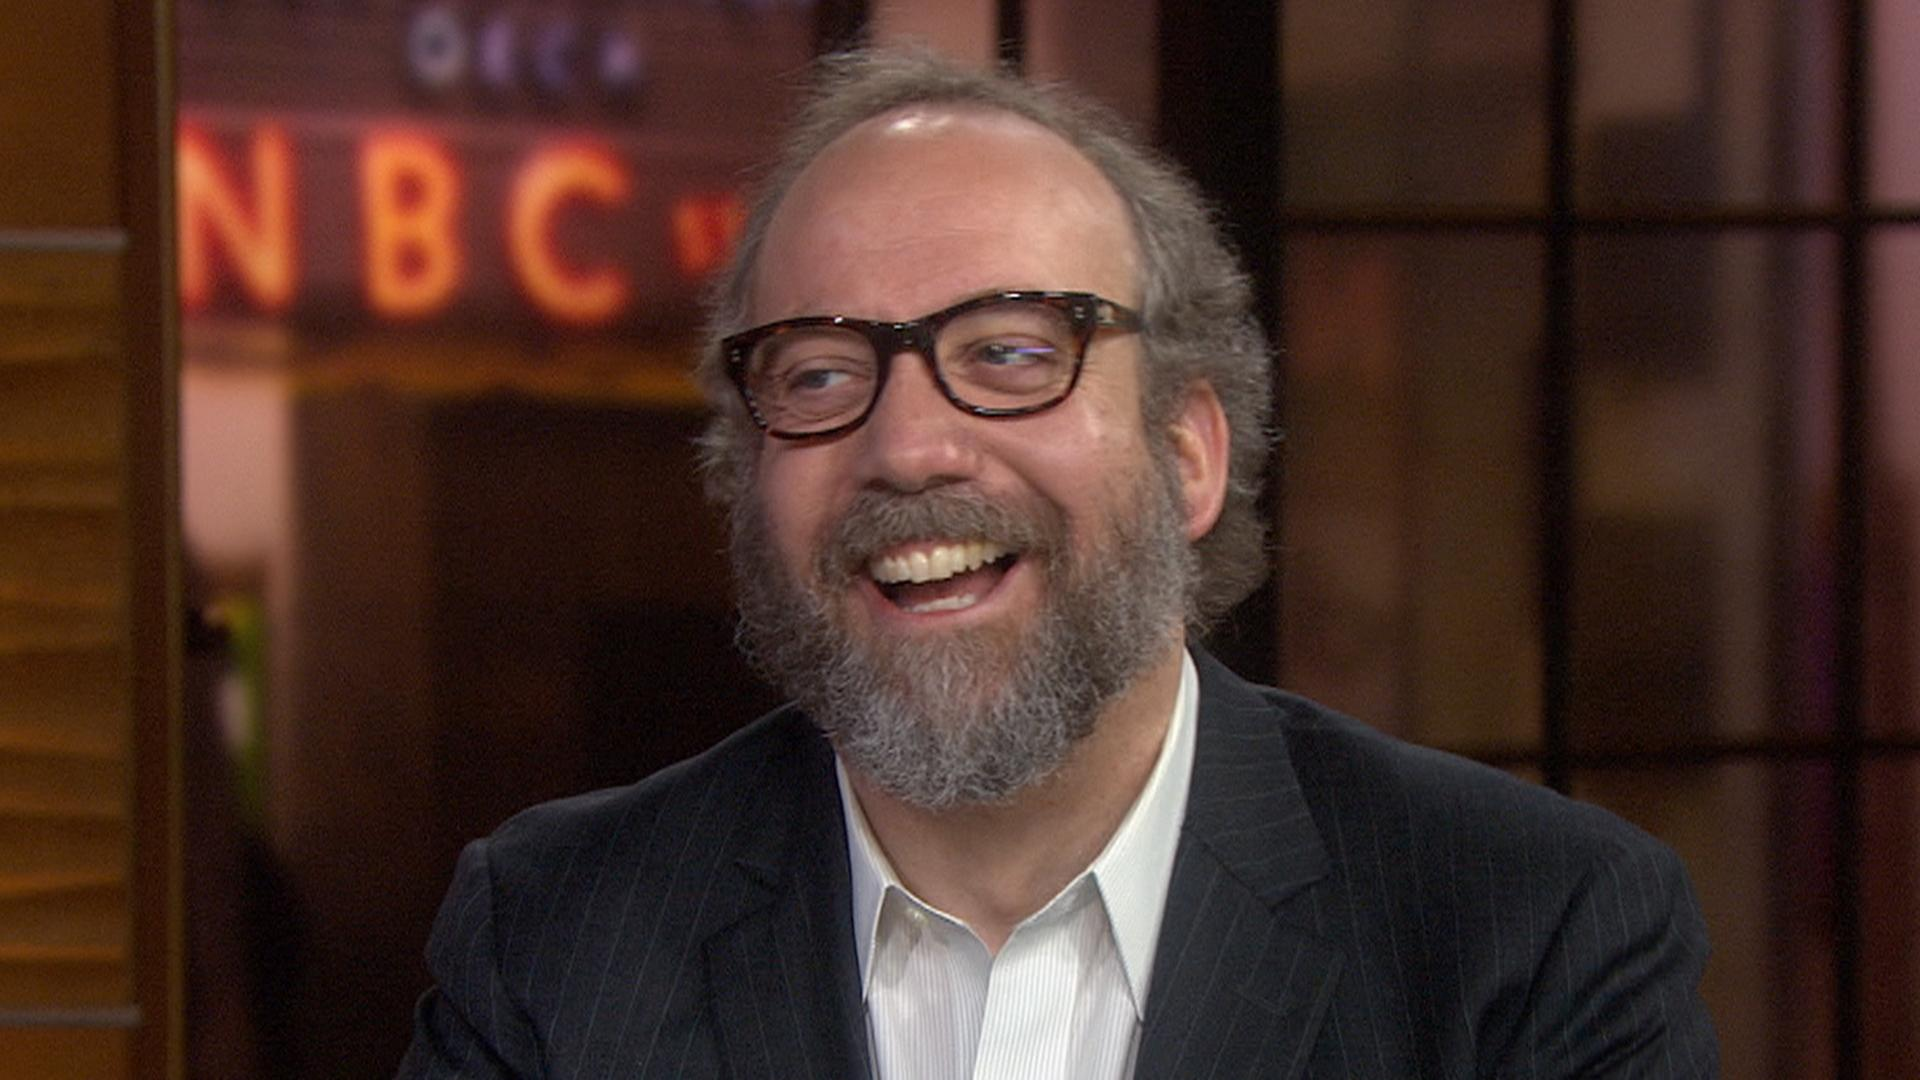 Paul Giamatti: I wanted to be a cartoonist